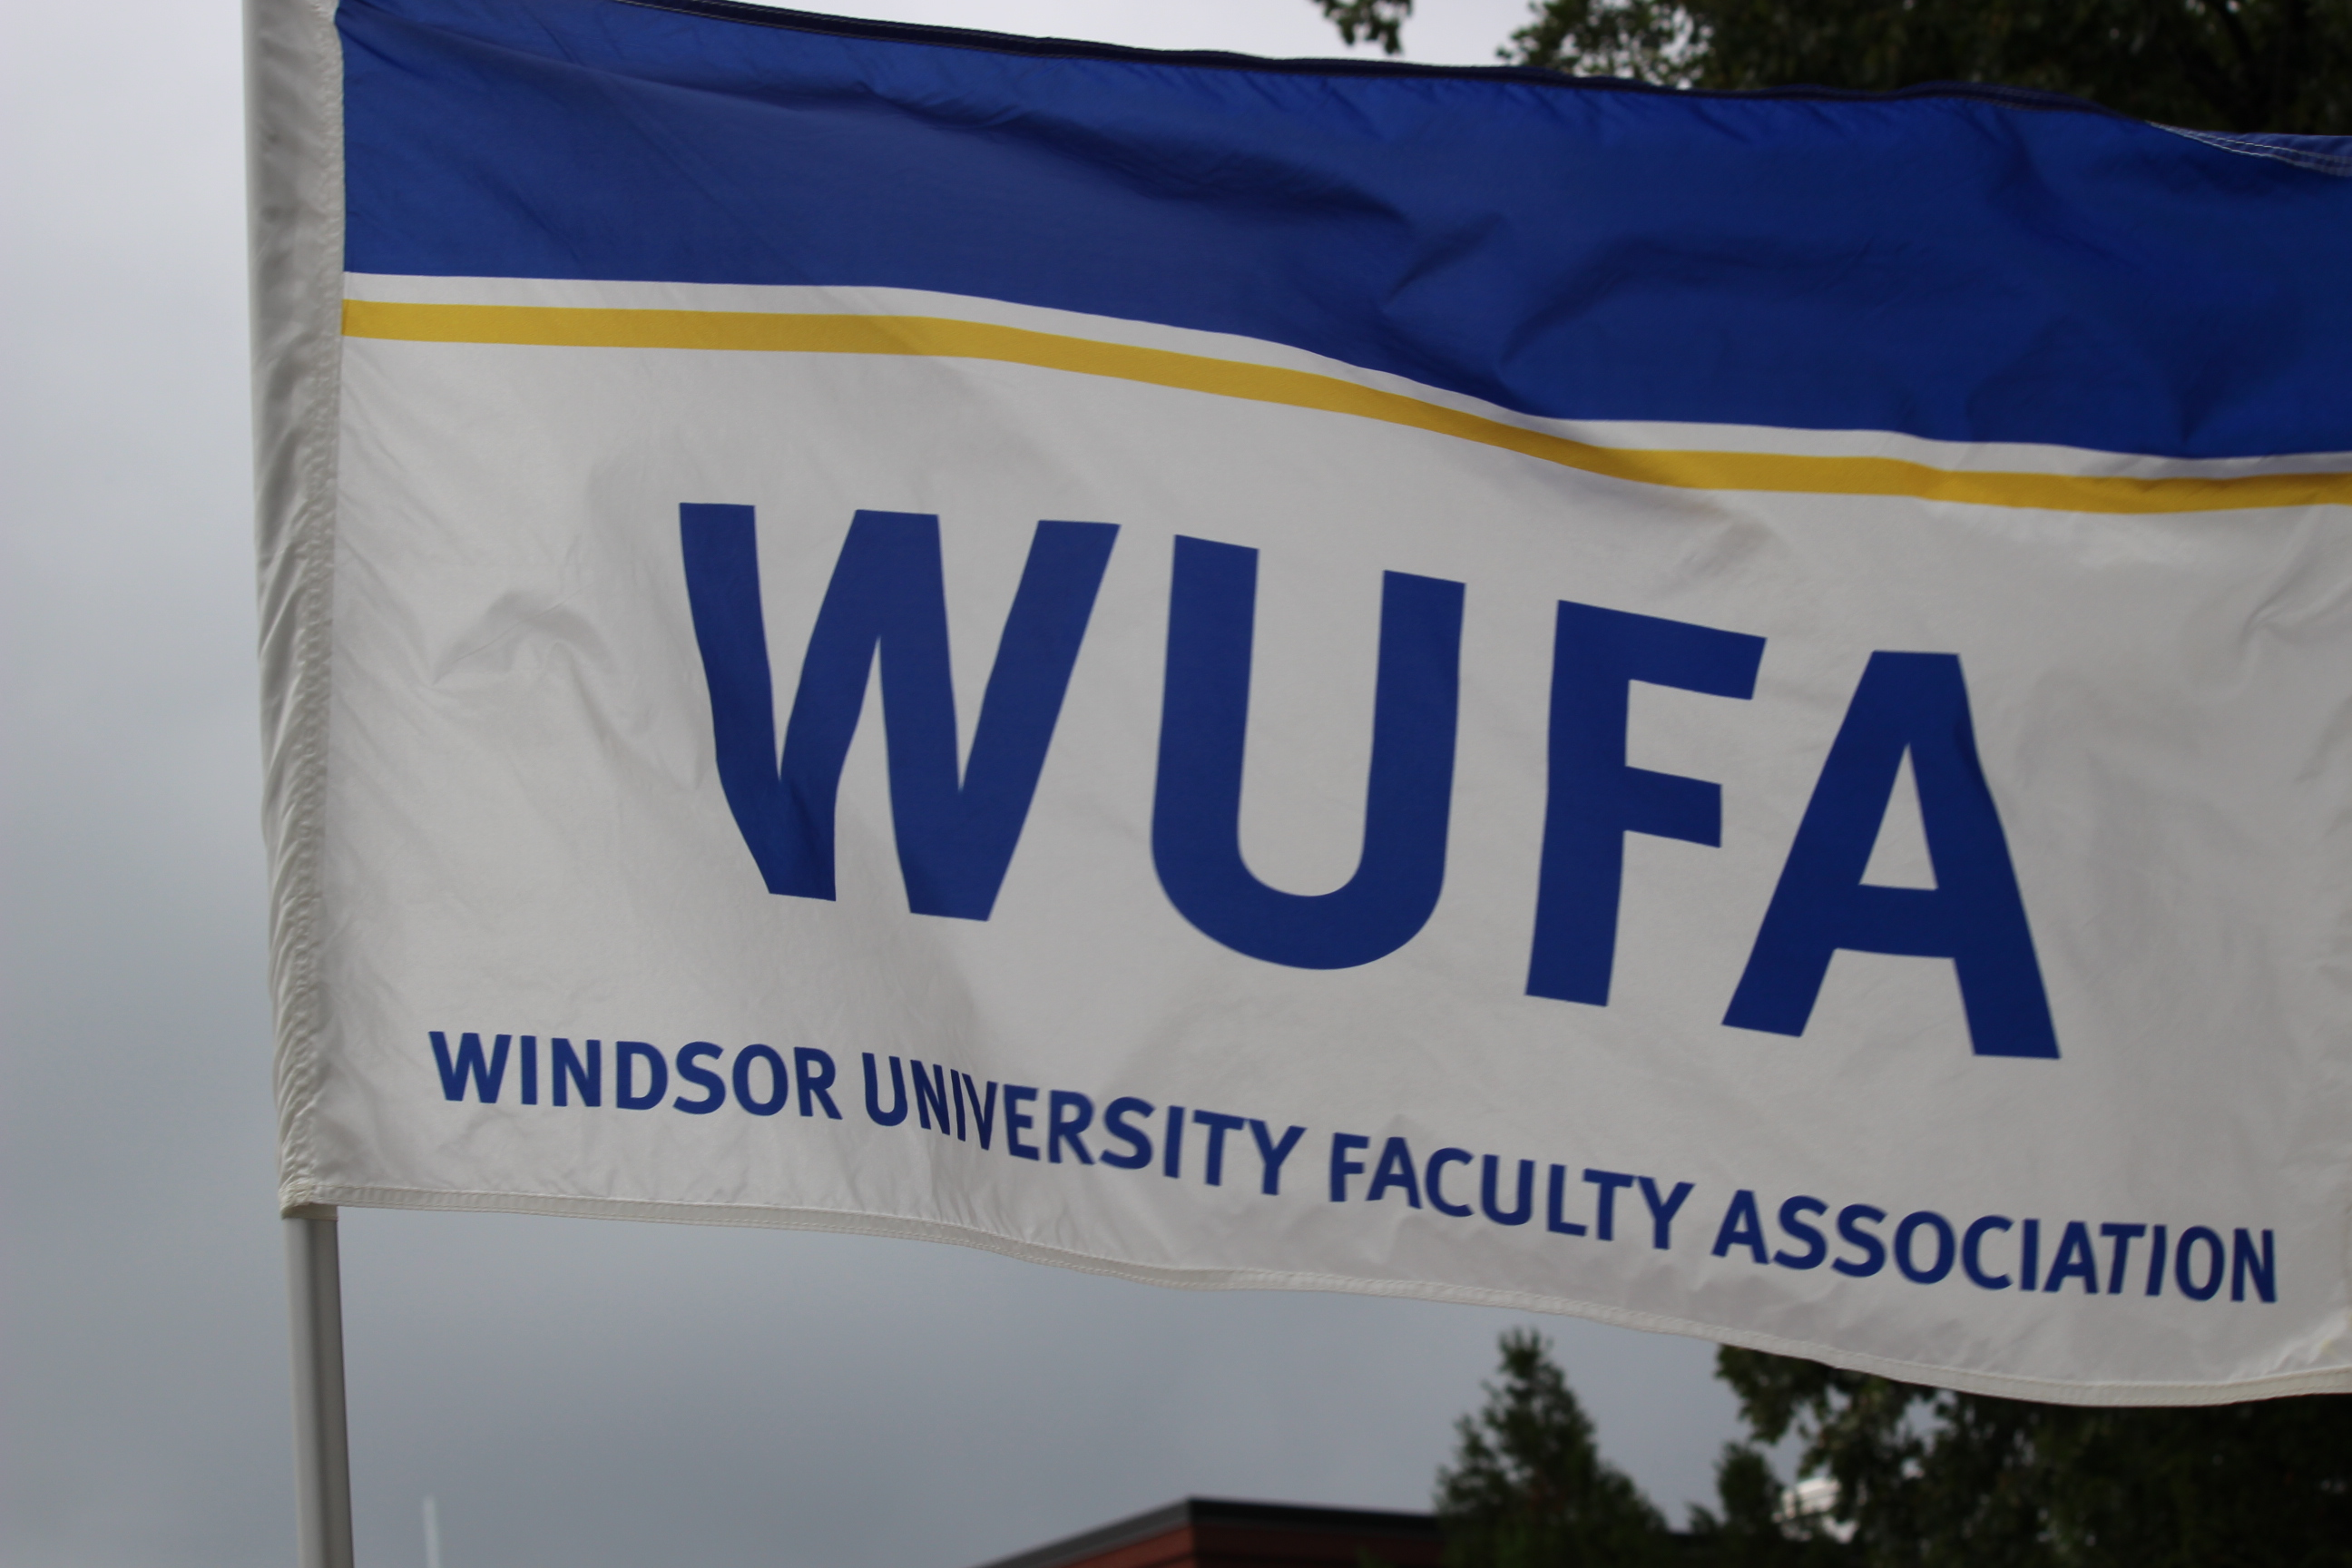 The Windsor University Faculty Association's flag. (Photo by Adelle Loiselle.)